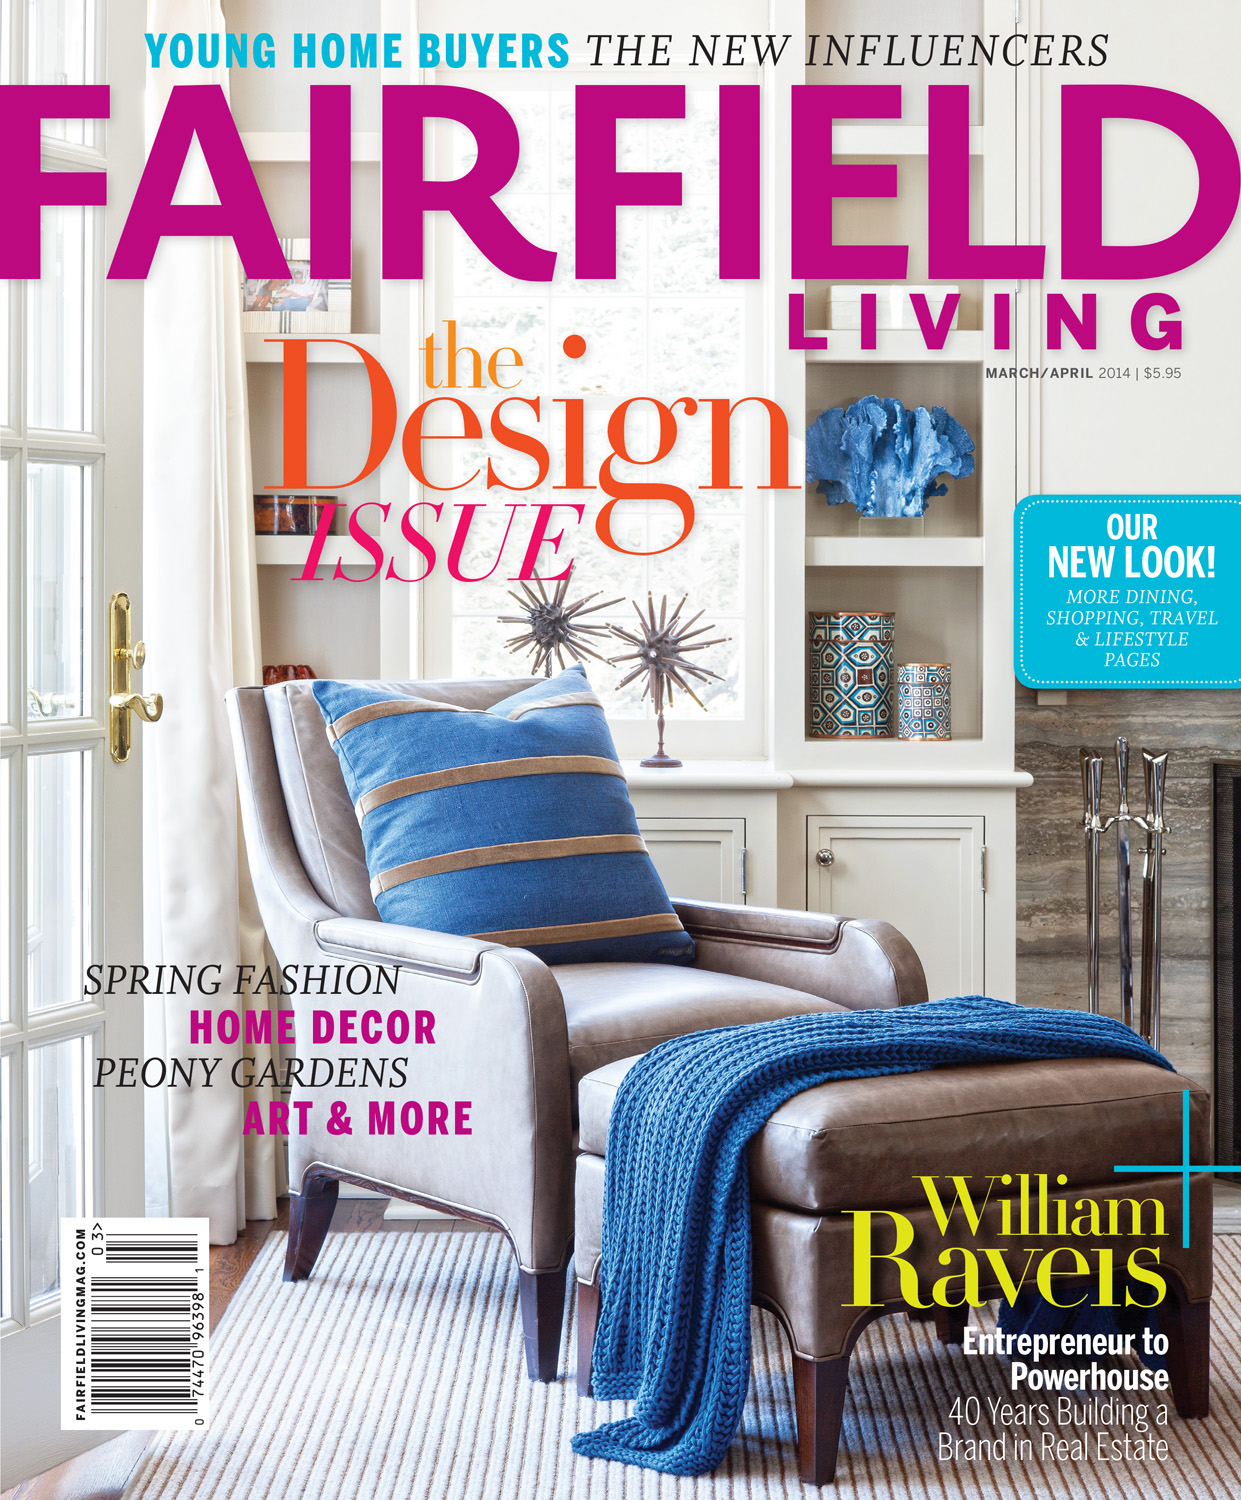 Fairfield Magazine March/April 2014